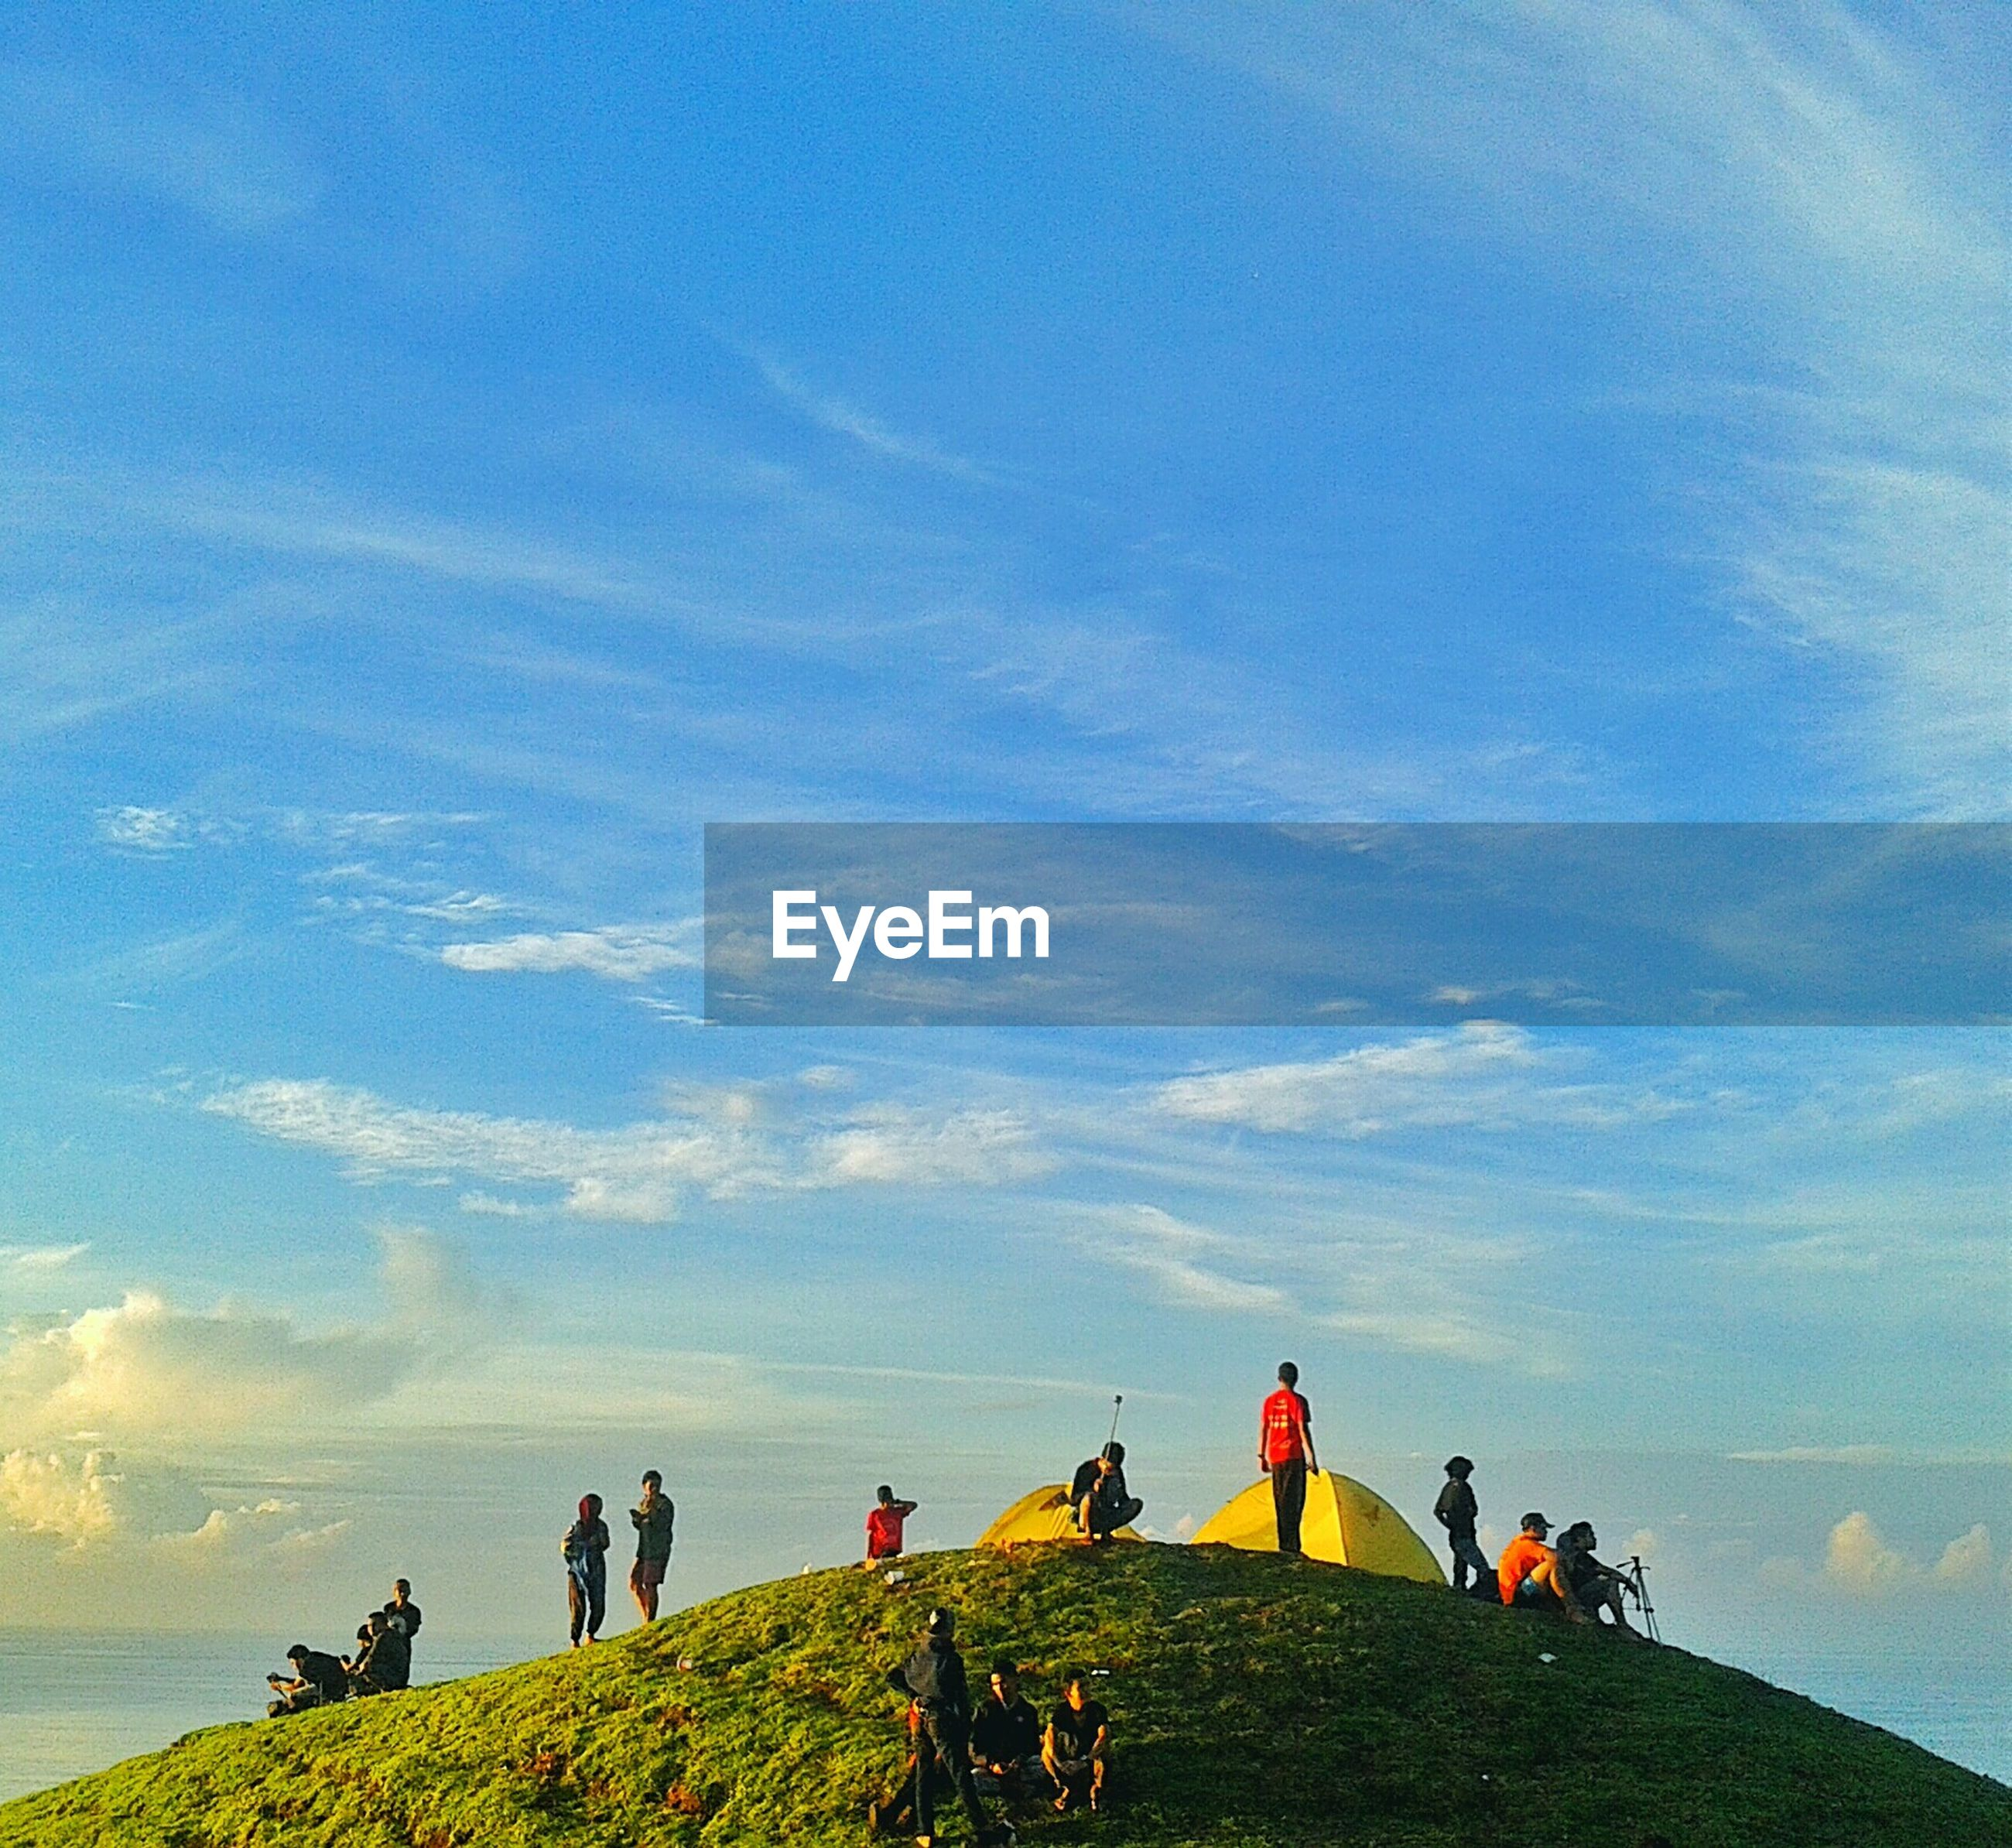 sky, large group of people, lifestyles, men, leisure activity, person, cloud - sky, mixed age range, landscape, nature, medium group of people, sitting, tranquility, togetherness, scenics, cloud, beauty in nature, tranquil scene, group of people